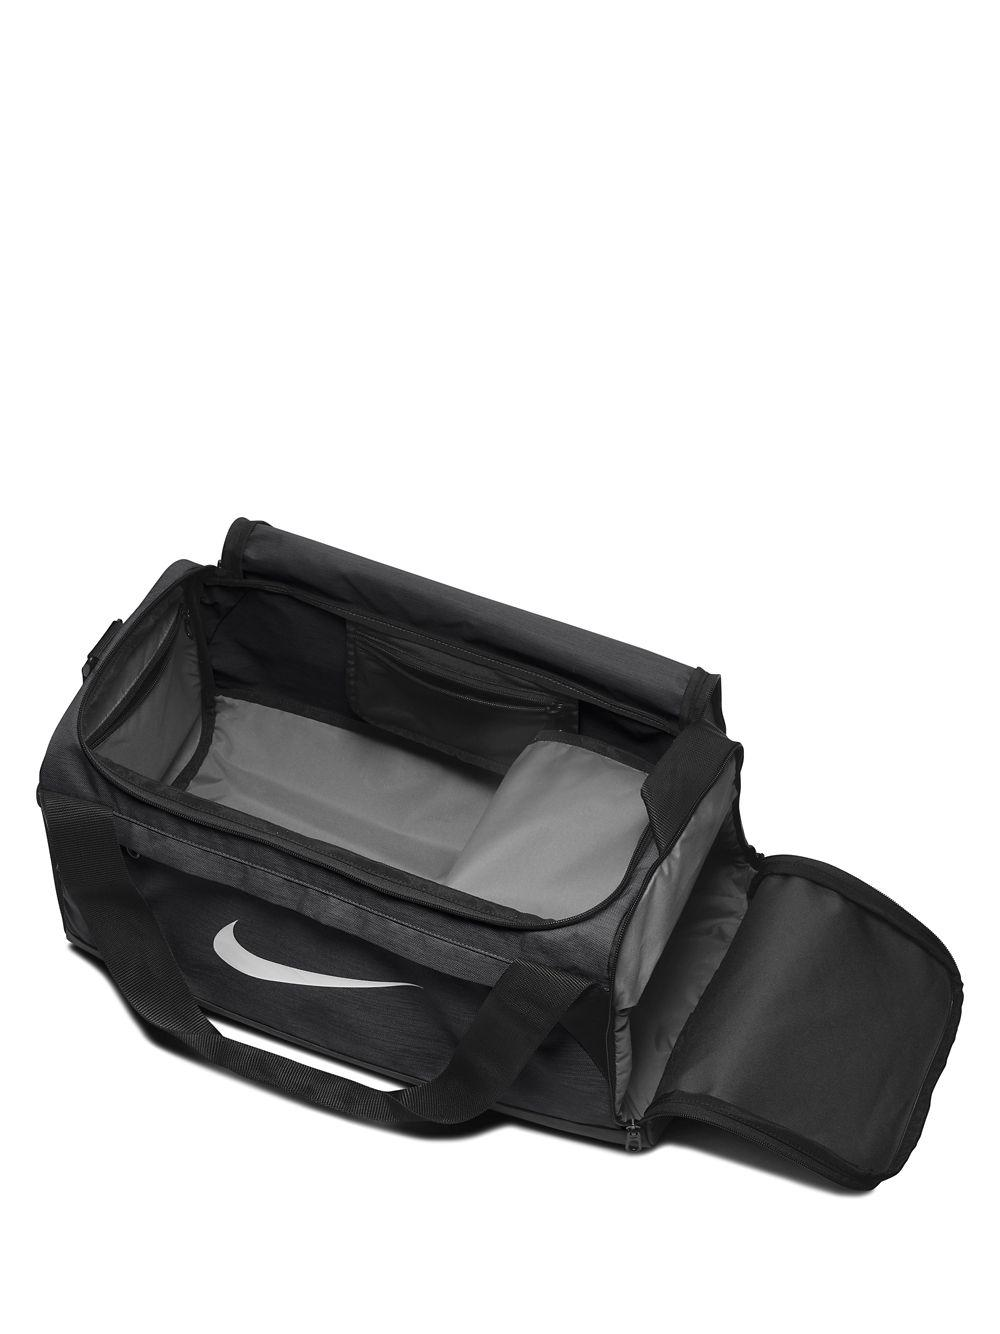 564627d9d1 Nike - Black Training Duffel Bag for Men - Lyst. View fullscreen